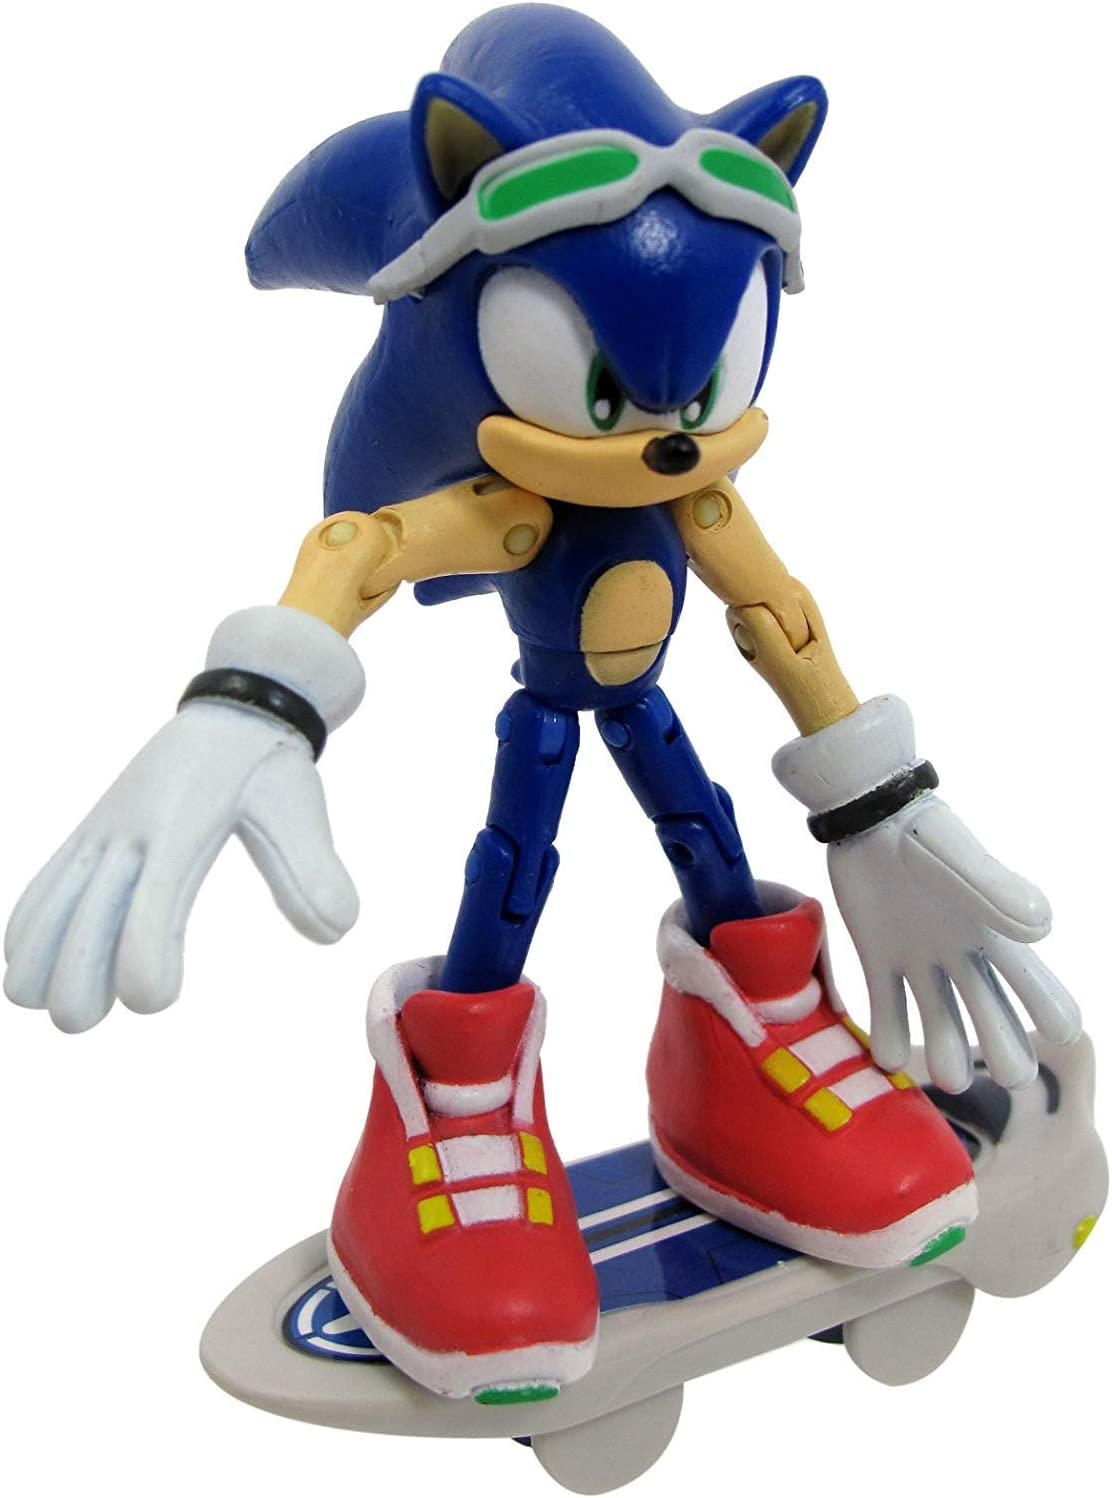 "Sonic the Hedgehog Werehog 3.5/"" plastique figurine par Jazwares"